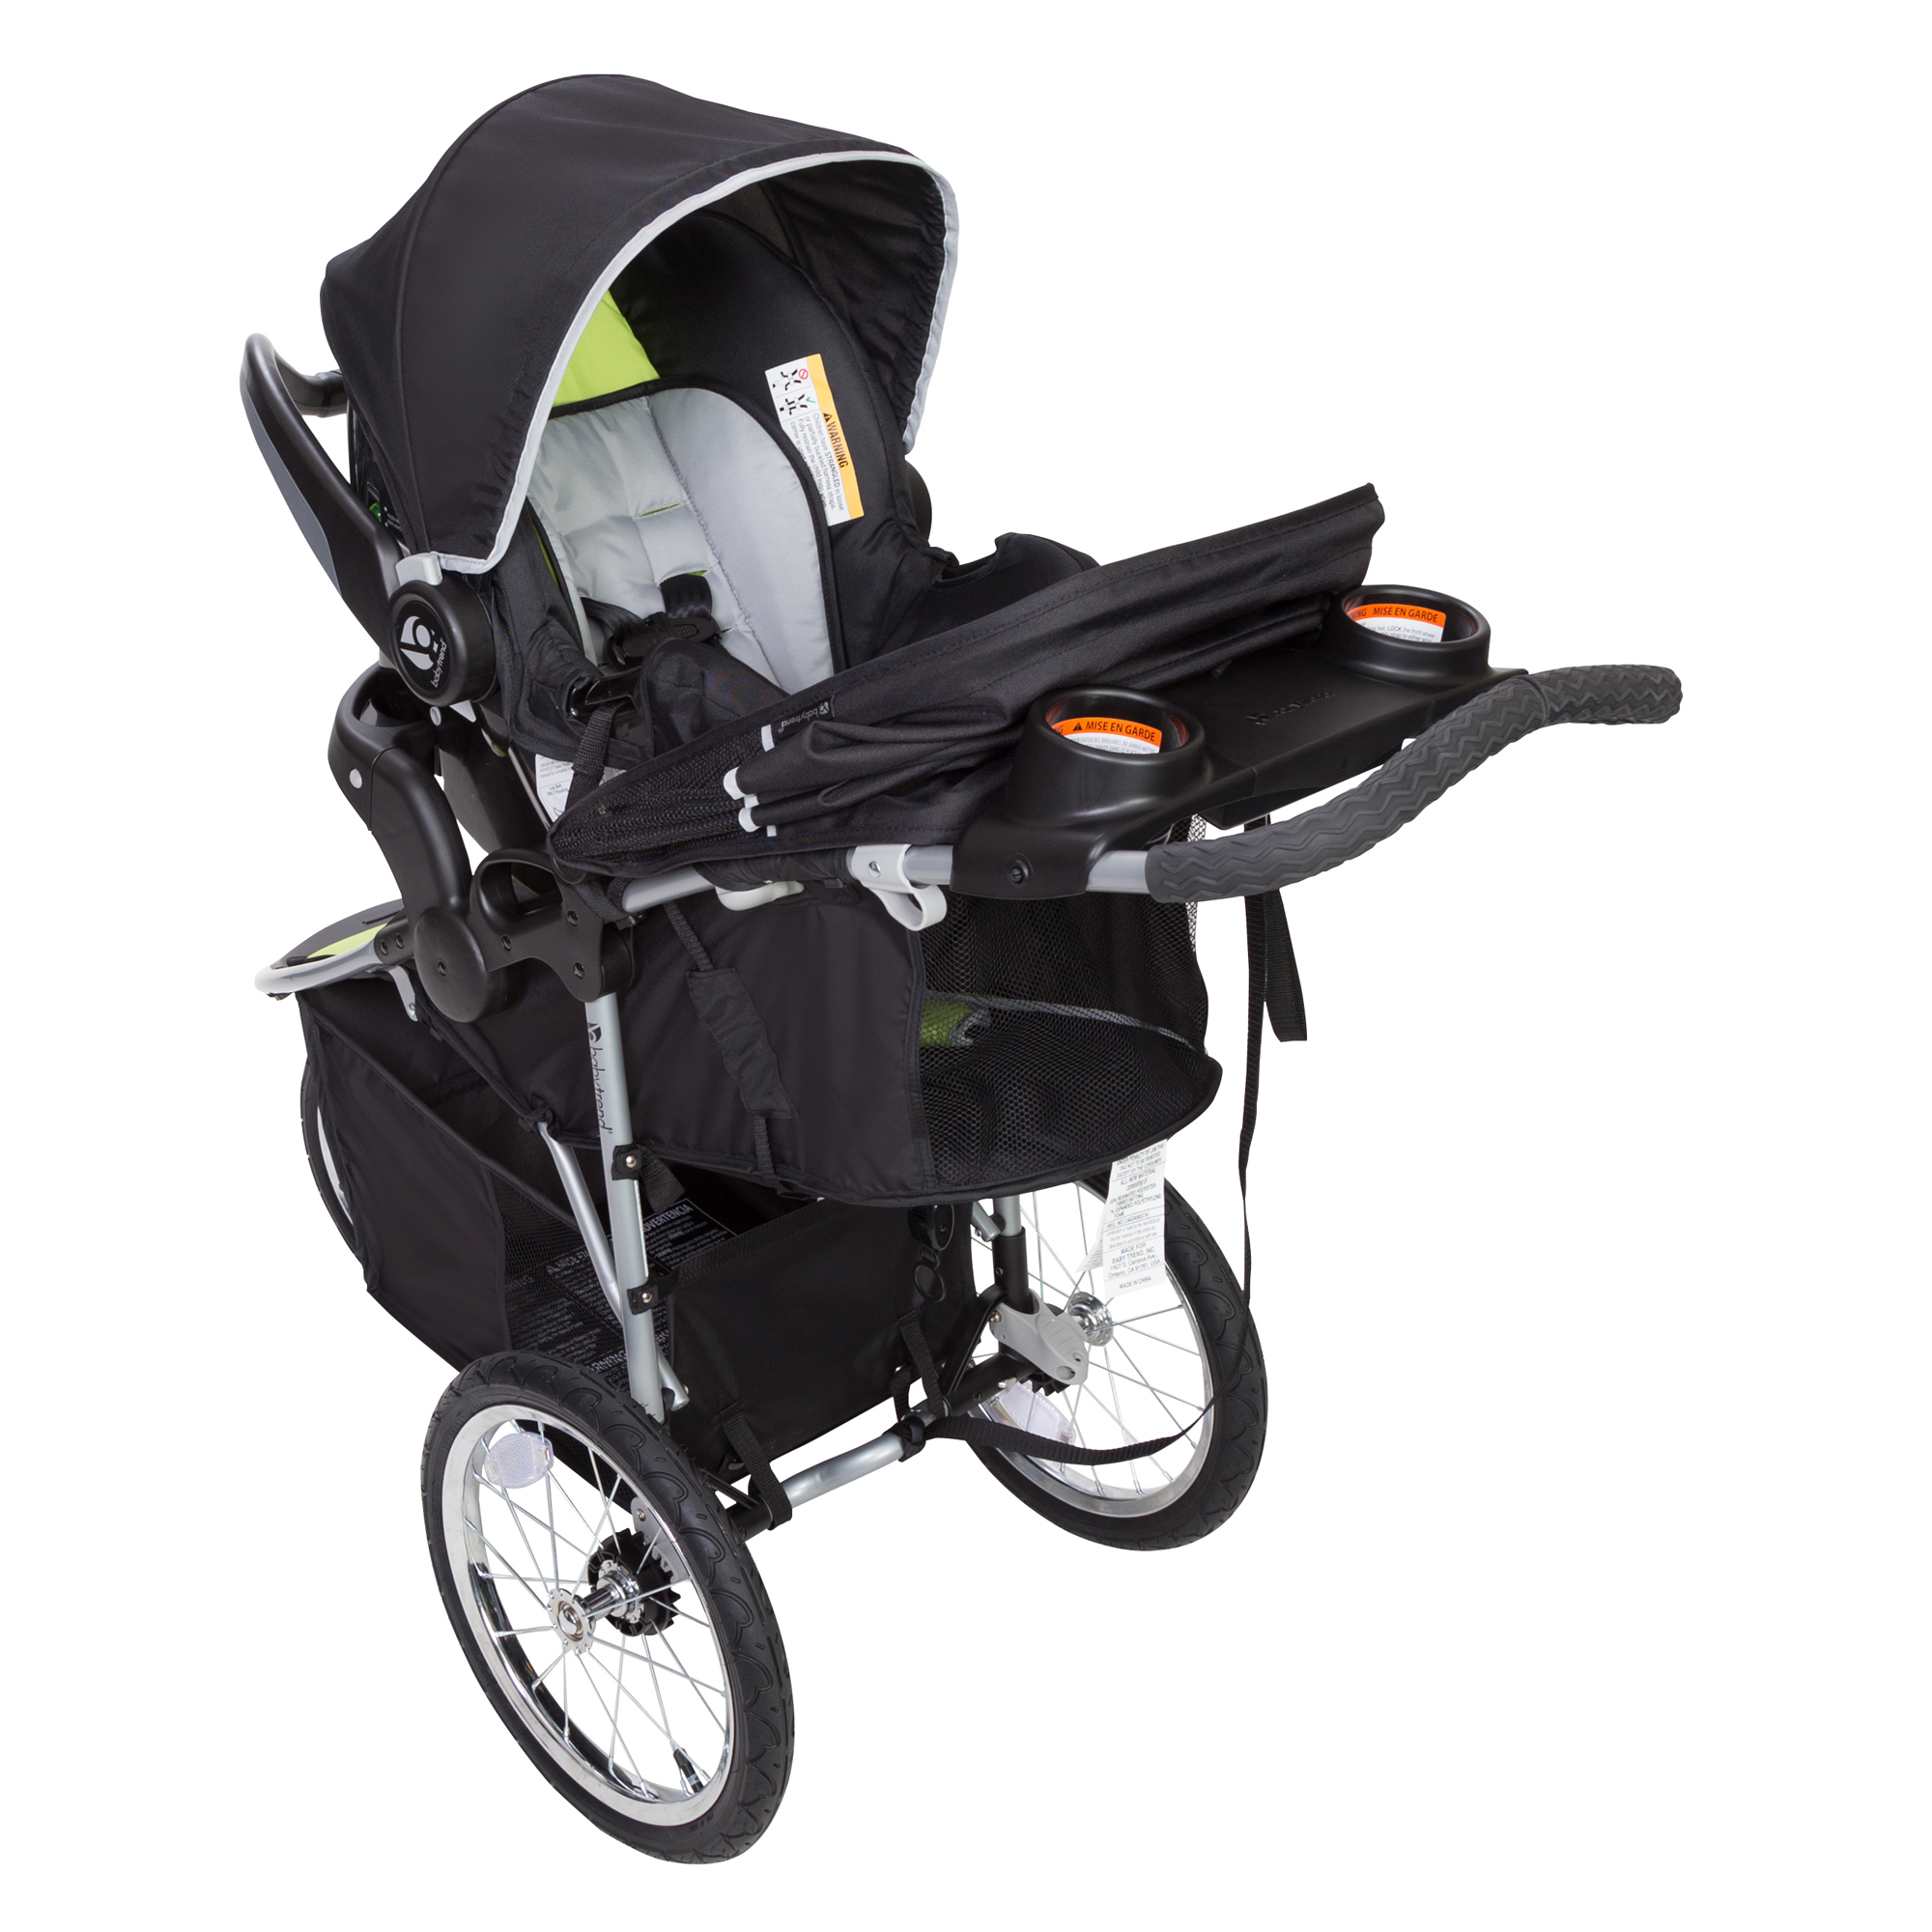 Jogger Travel System Outdoor Jogging Stroller Car Seat Baby Safety Optic Green